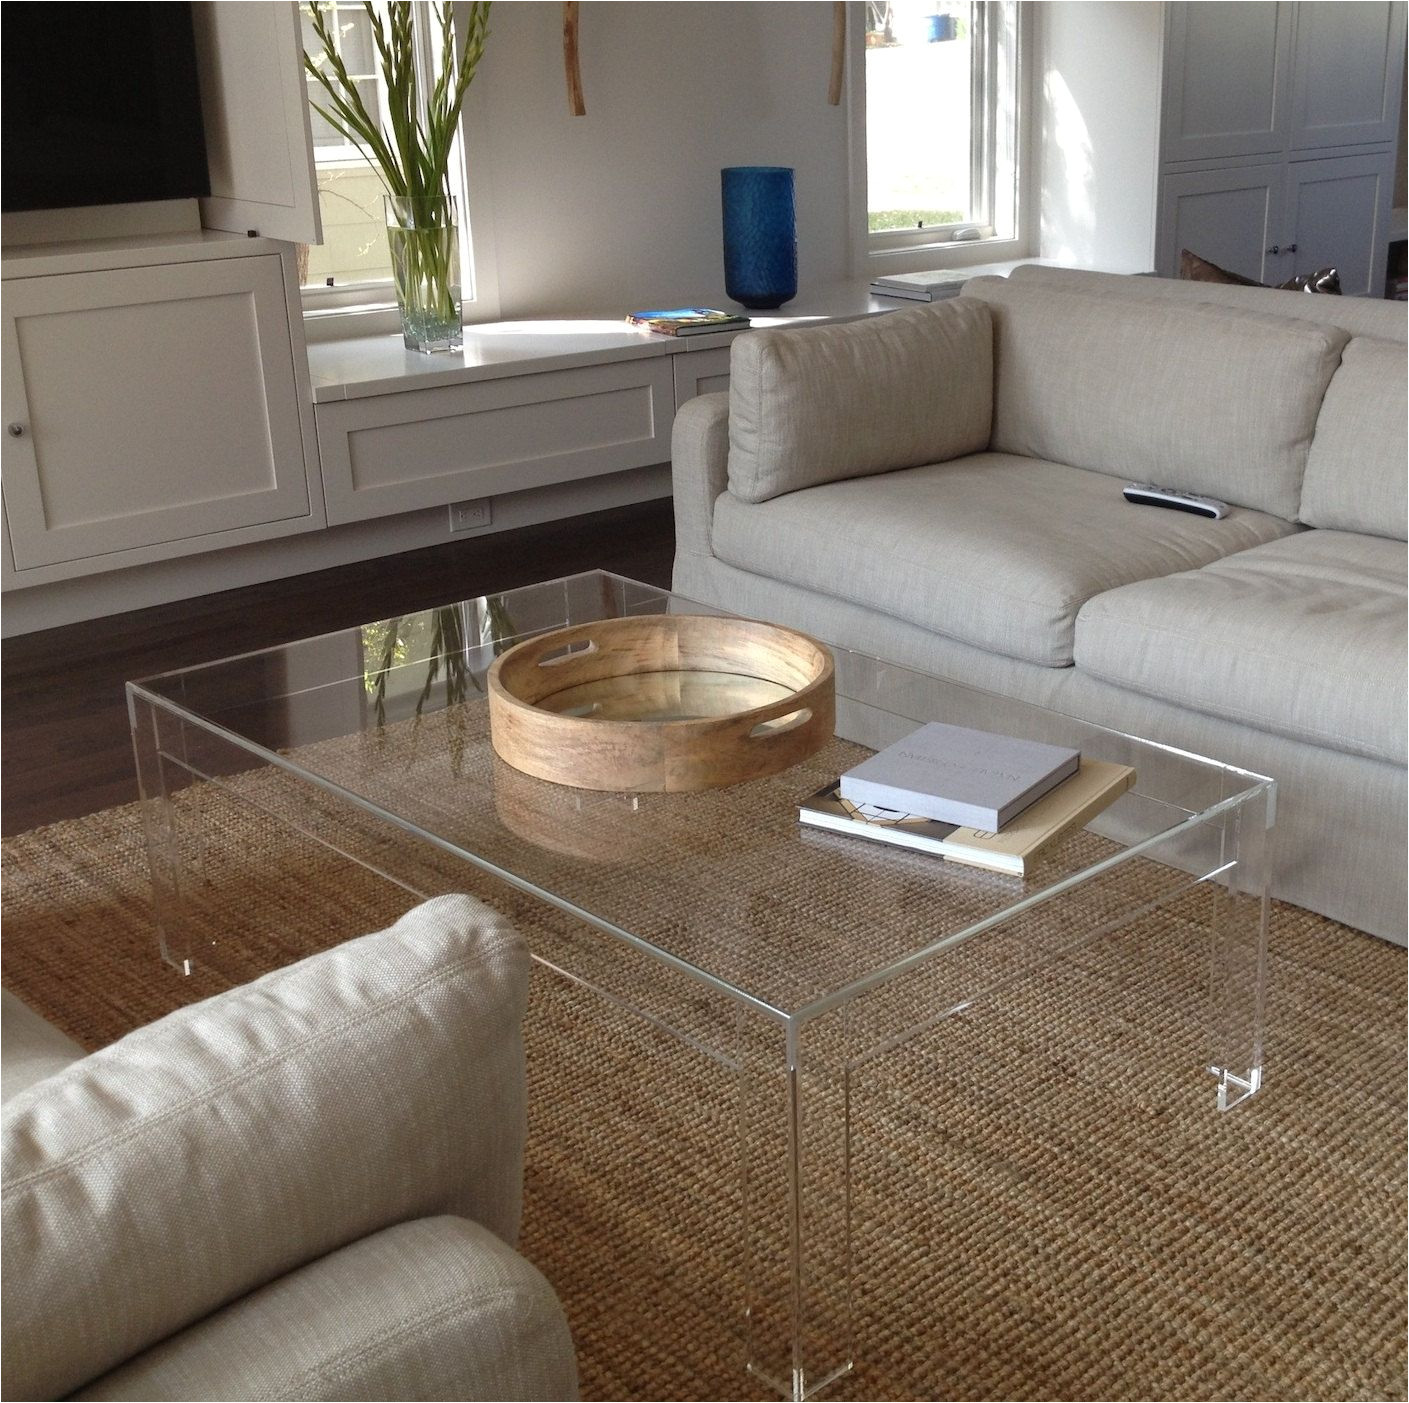 a8884dad9dc4bfc5fad20ecc68df8464 a8884dad9dc4bfc5fad20ecc68df8464 coffee table rectangle lucite coffee tables clear coffee table coffee table